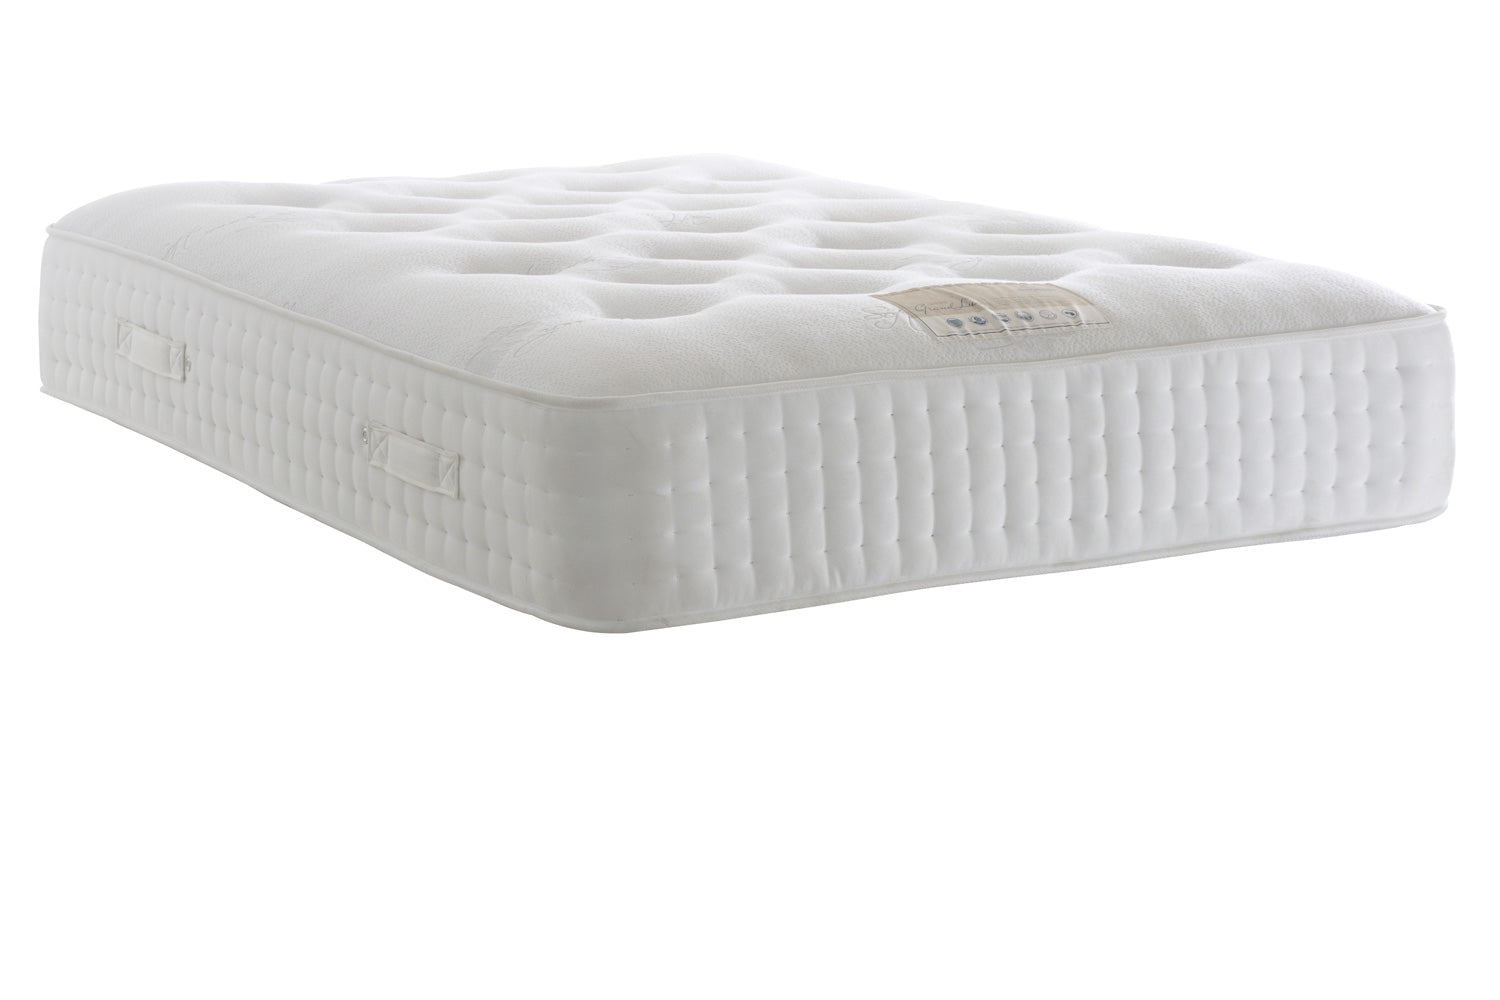 2000 Grand Luxe Divan Bed (Mattress = Medium)